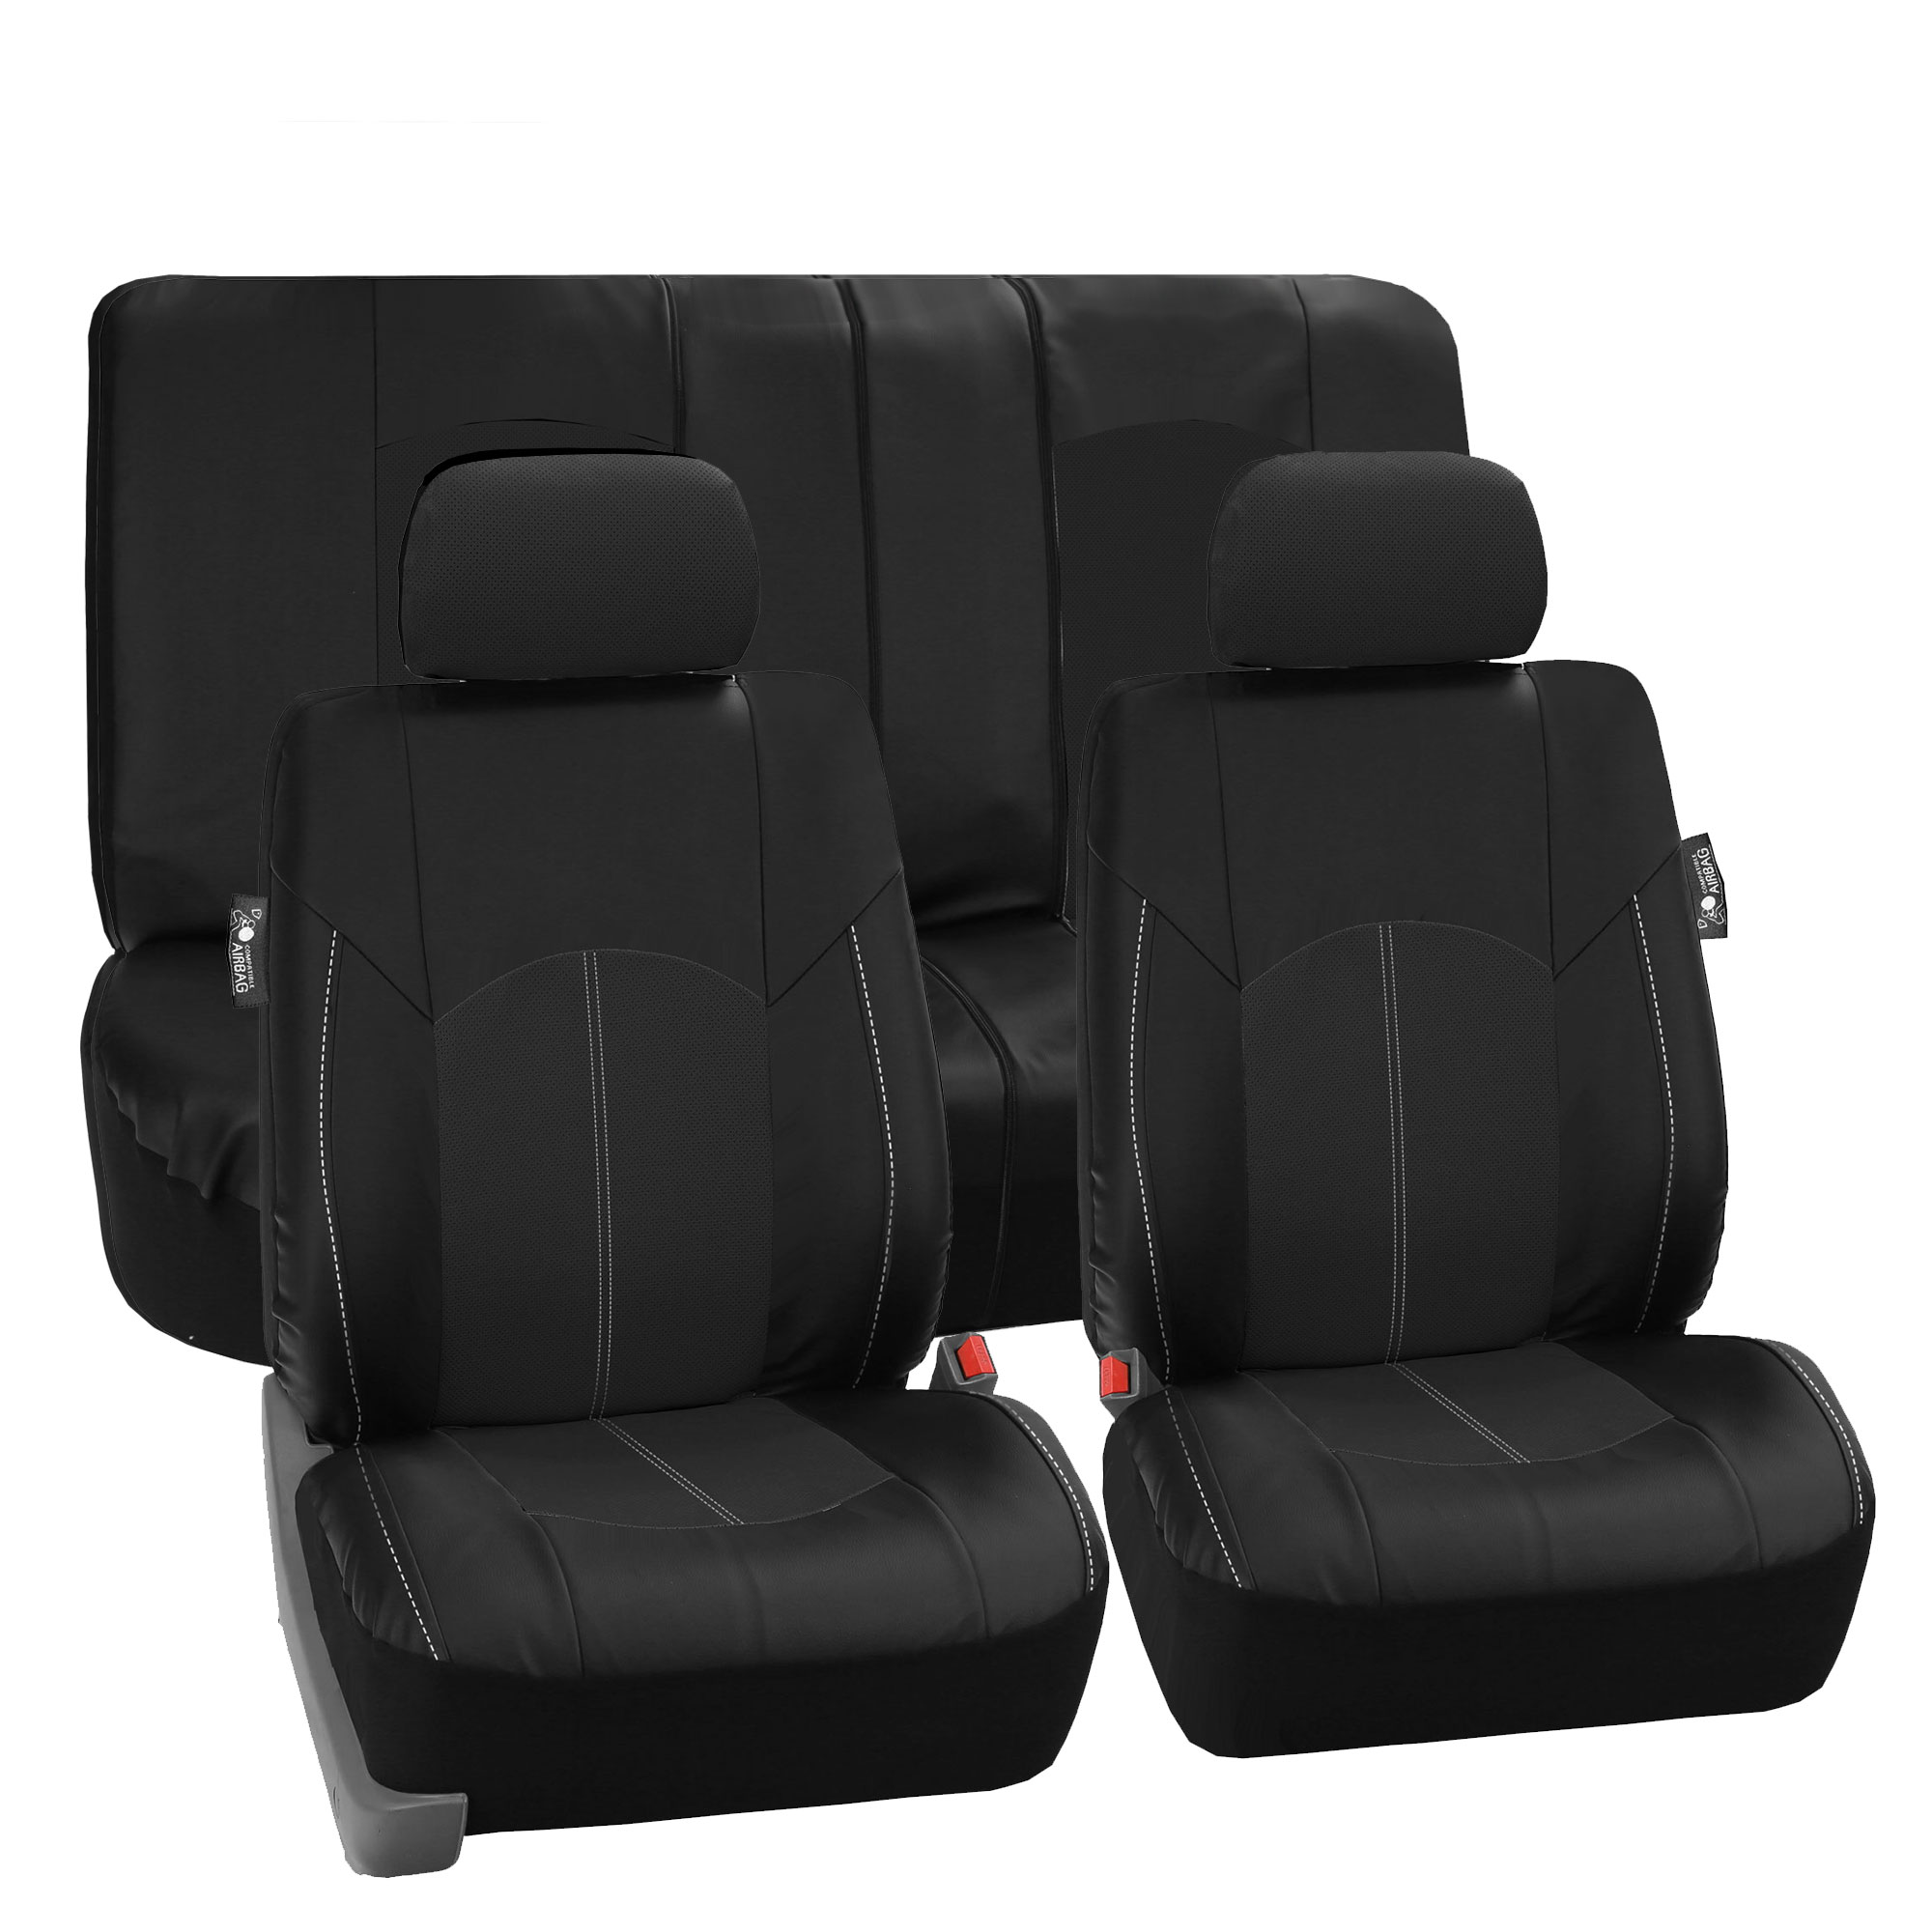 top quality pu leather front back car seat covers black for car truck. Black Bedroom Furniture Sets. Home Design Ideas